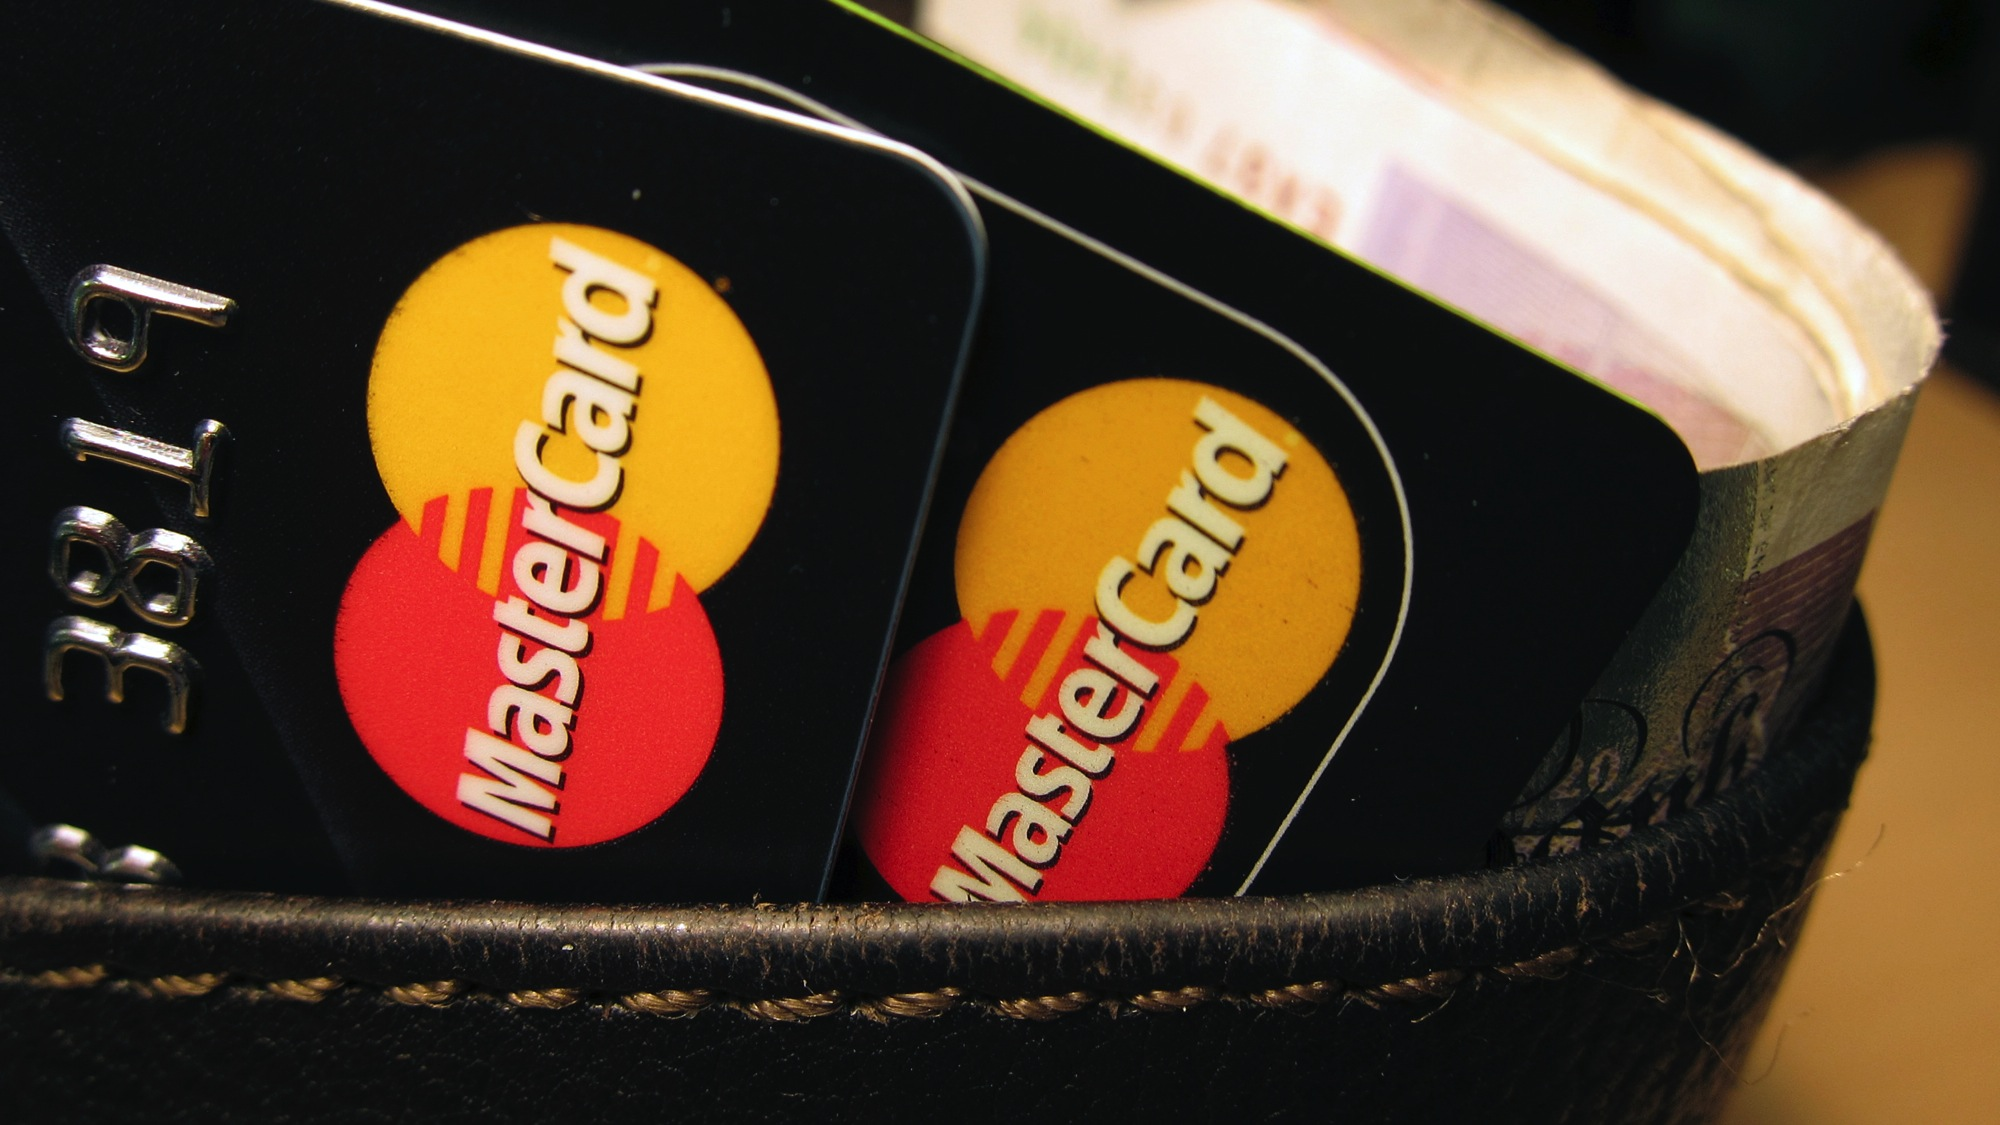 MasterCard is joining Apple, Google, PayPal, and Square in